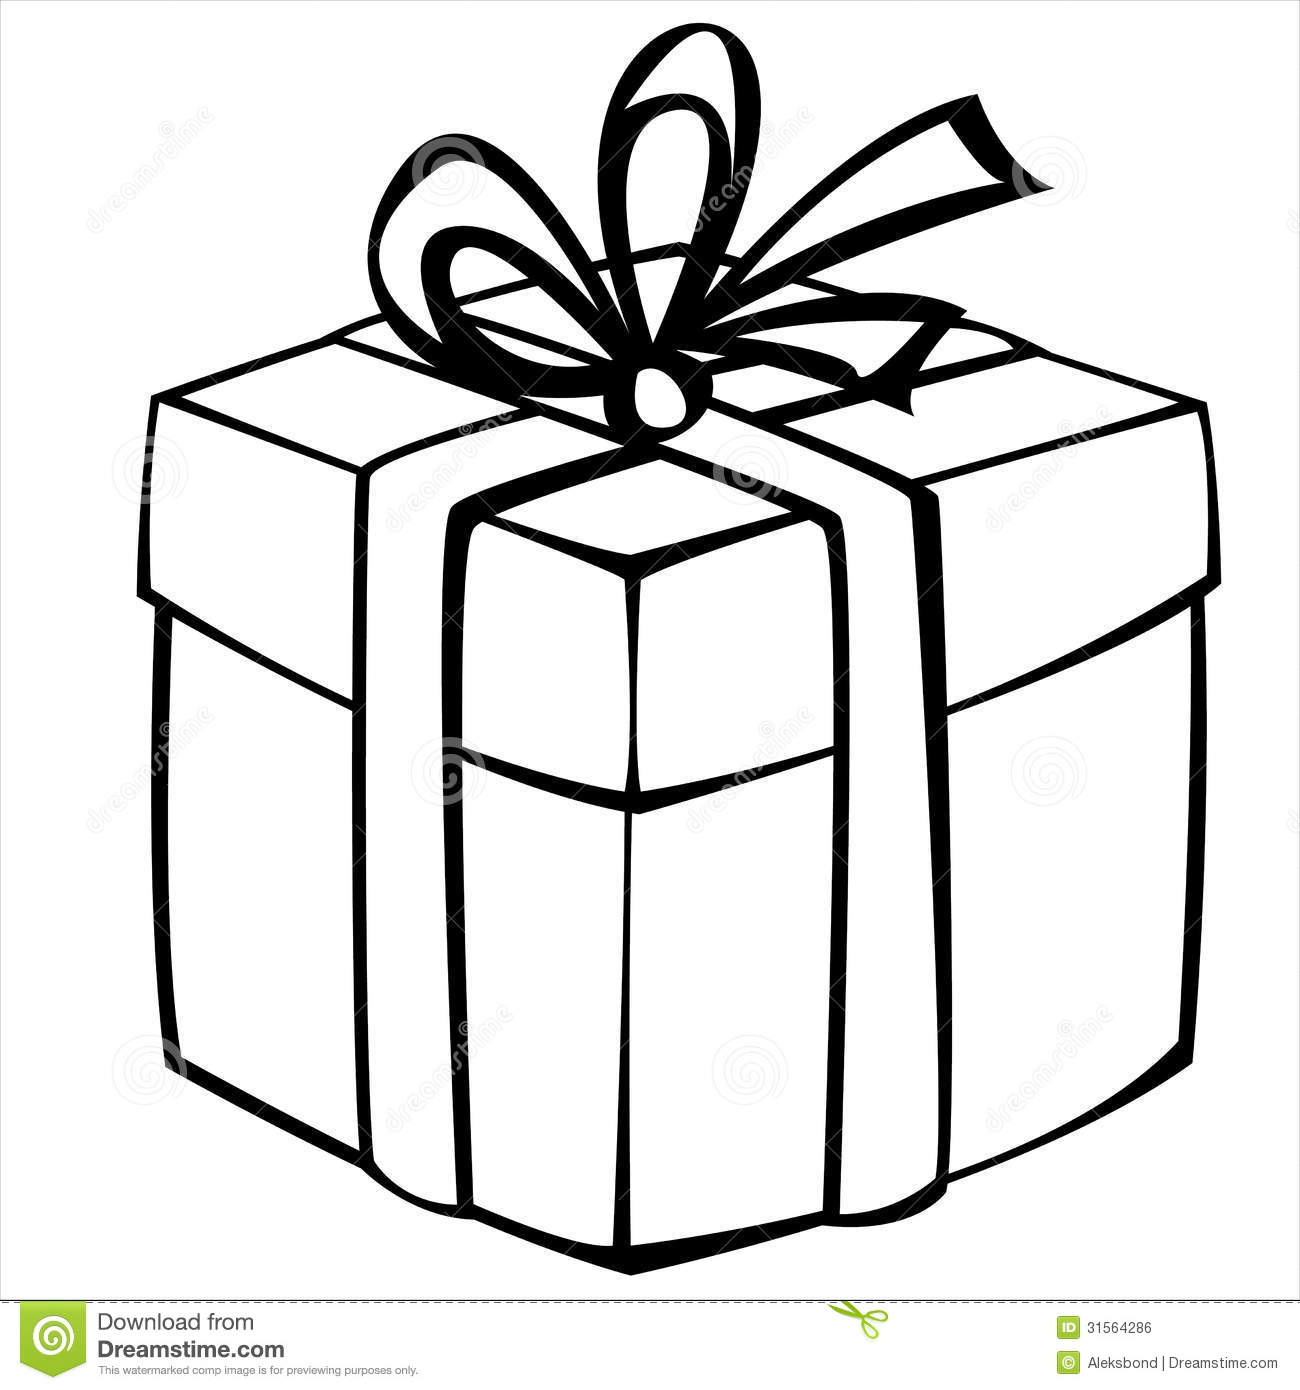 how to draw a christmas present how to draw christmas presents drawingnow christmas how a to draw present